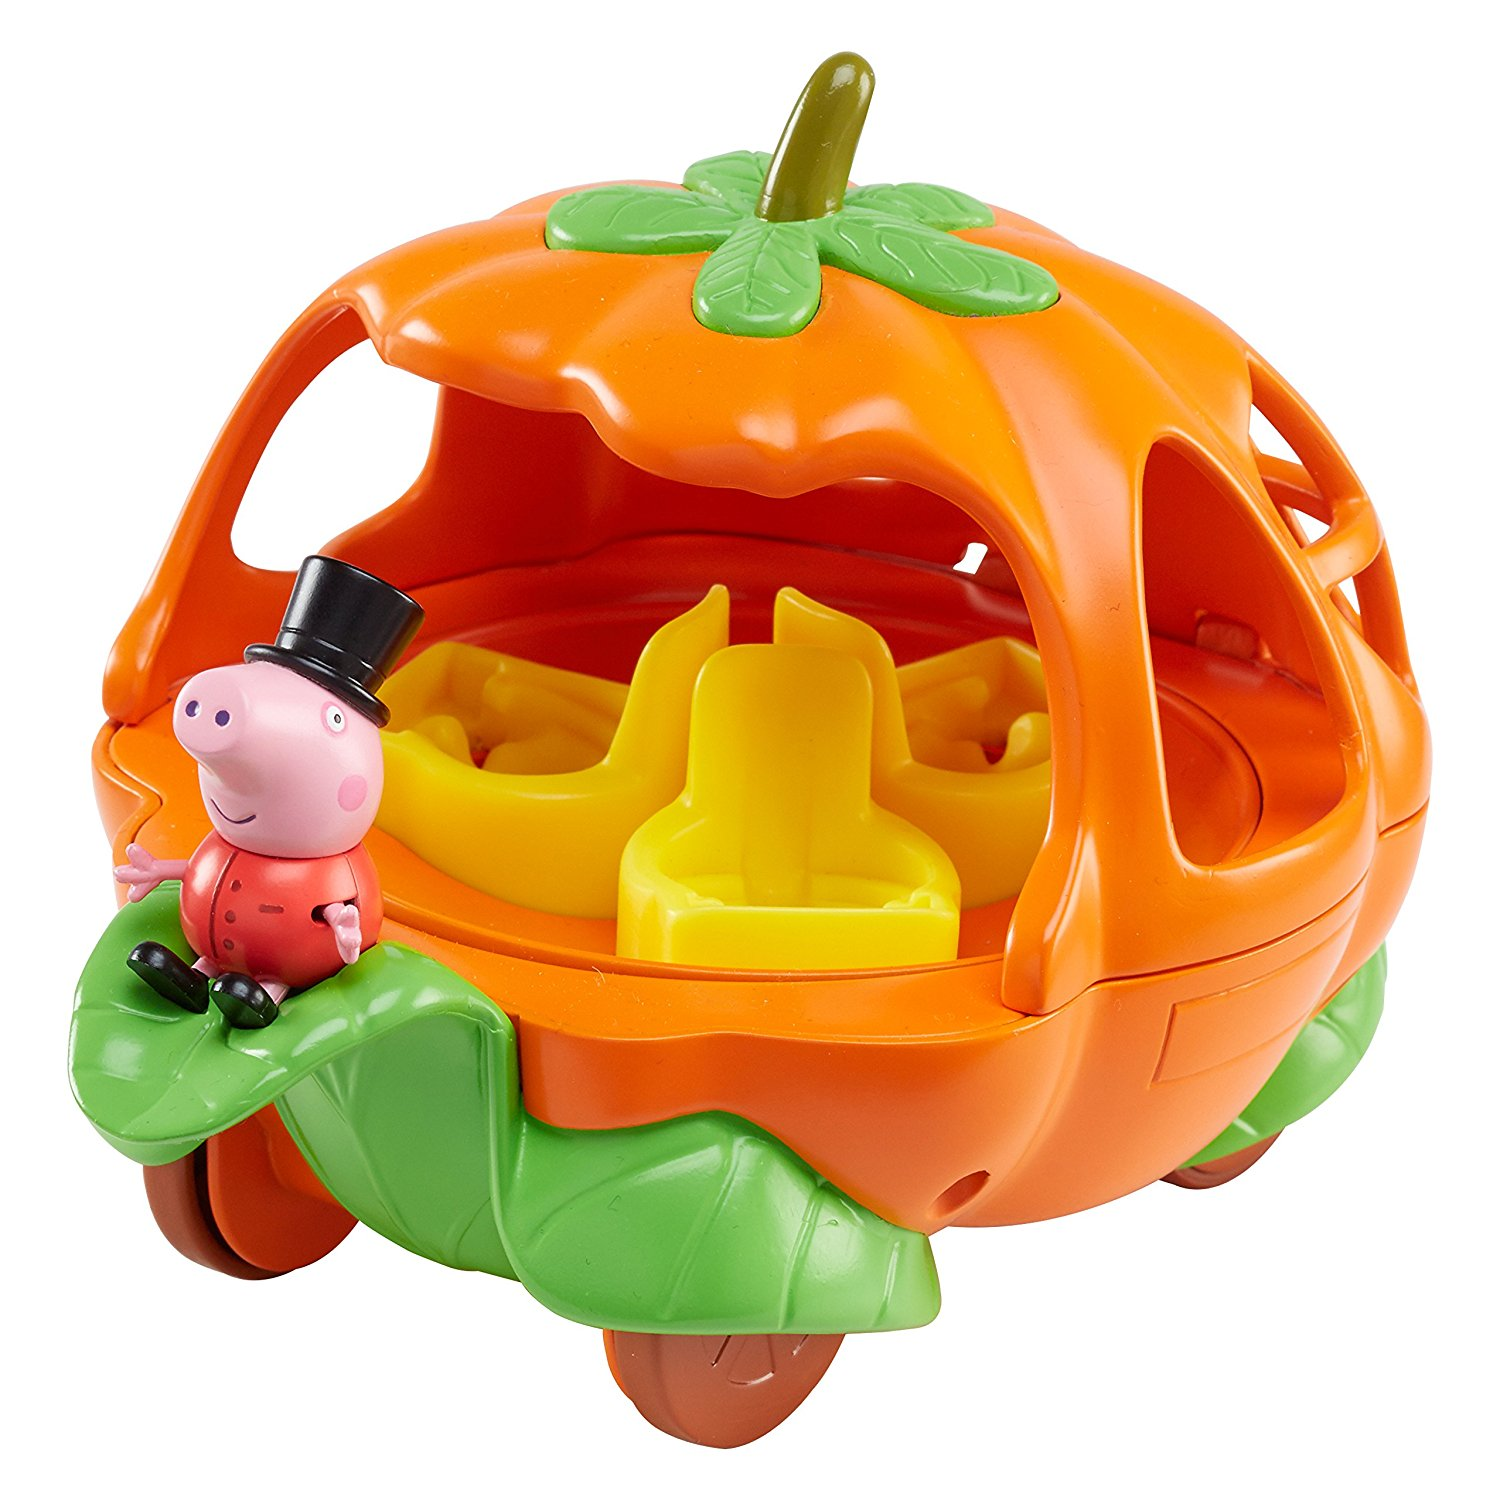 Amazon.com: Peppa Pig Once Upon a Time Pumpkin Carriage: Toys & Games